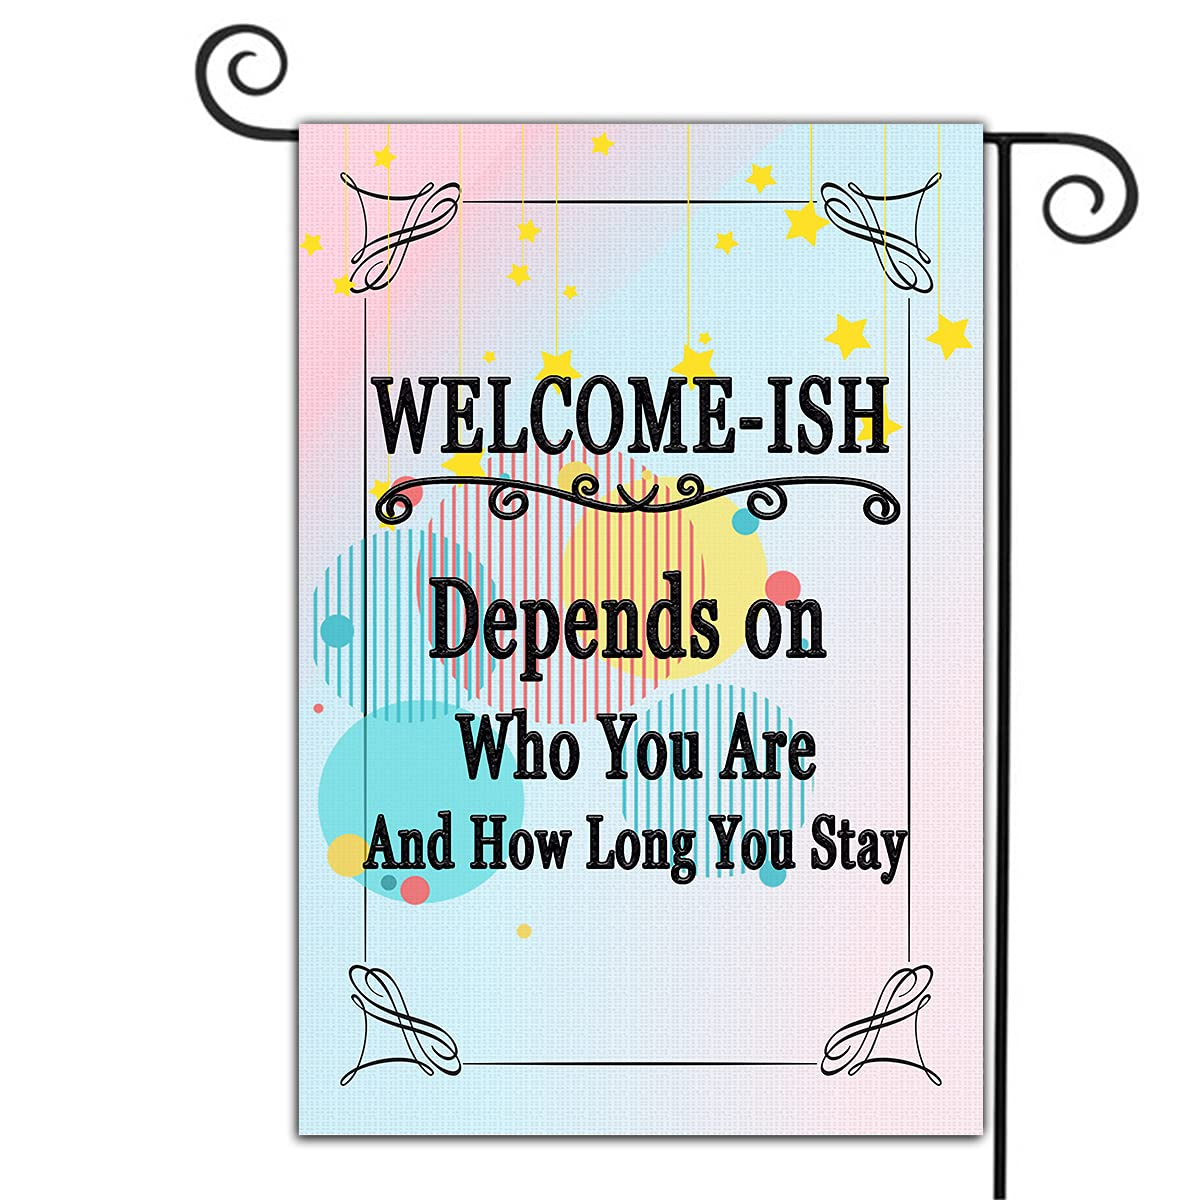 Welcome Garden Flags Courtyards Double Sided Home Decor Yard FlagWelcome-Ish Depends On Who You Are And How Long You Stay Personalized Seasonal Watercolor Outdoor Banner Burlap Flag 12.5 x 18 Inch